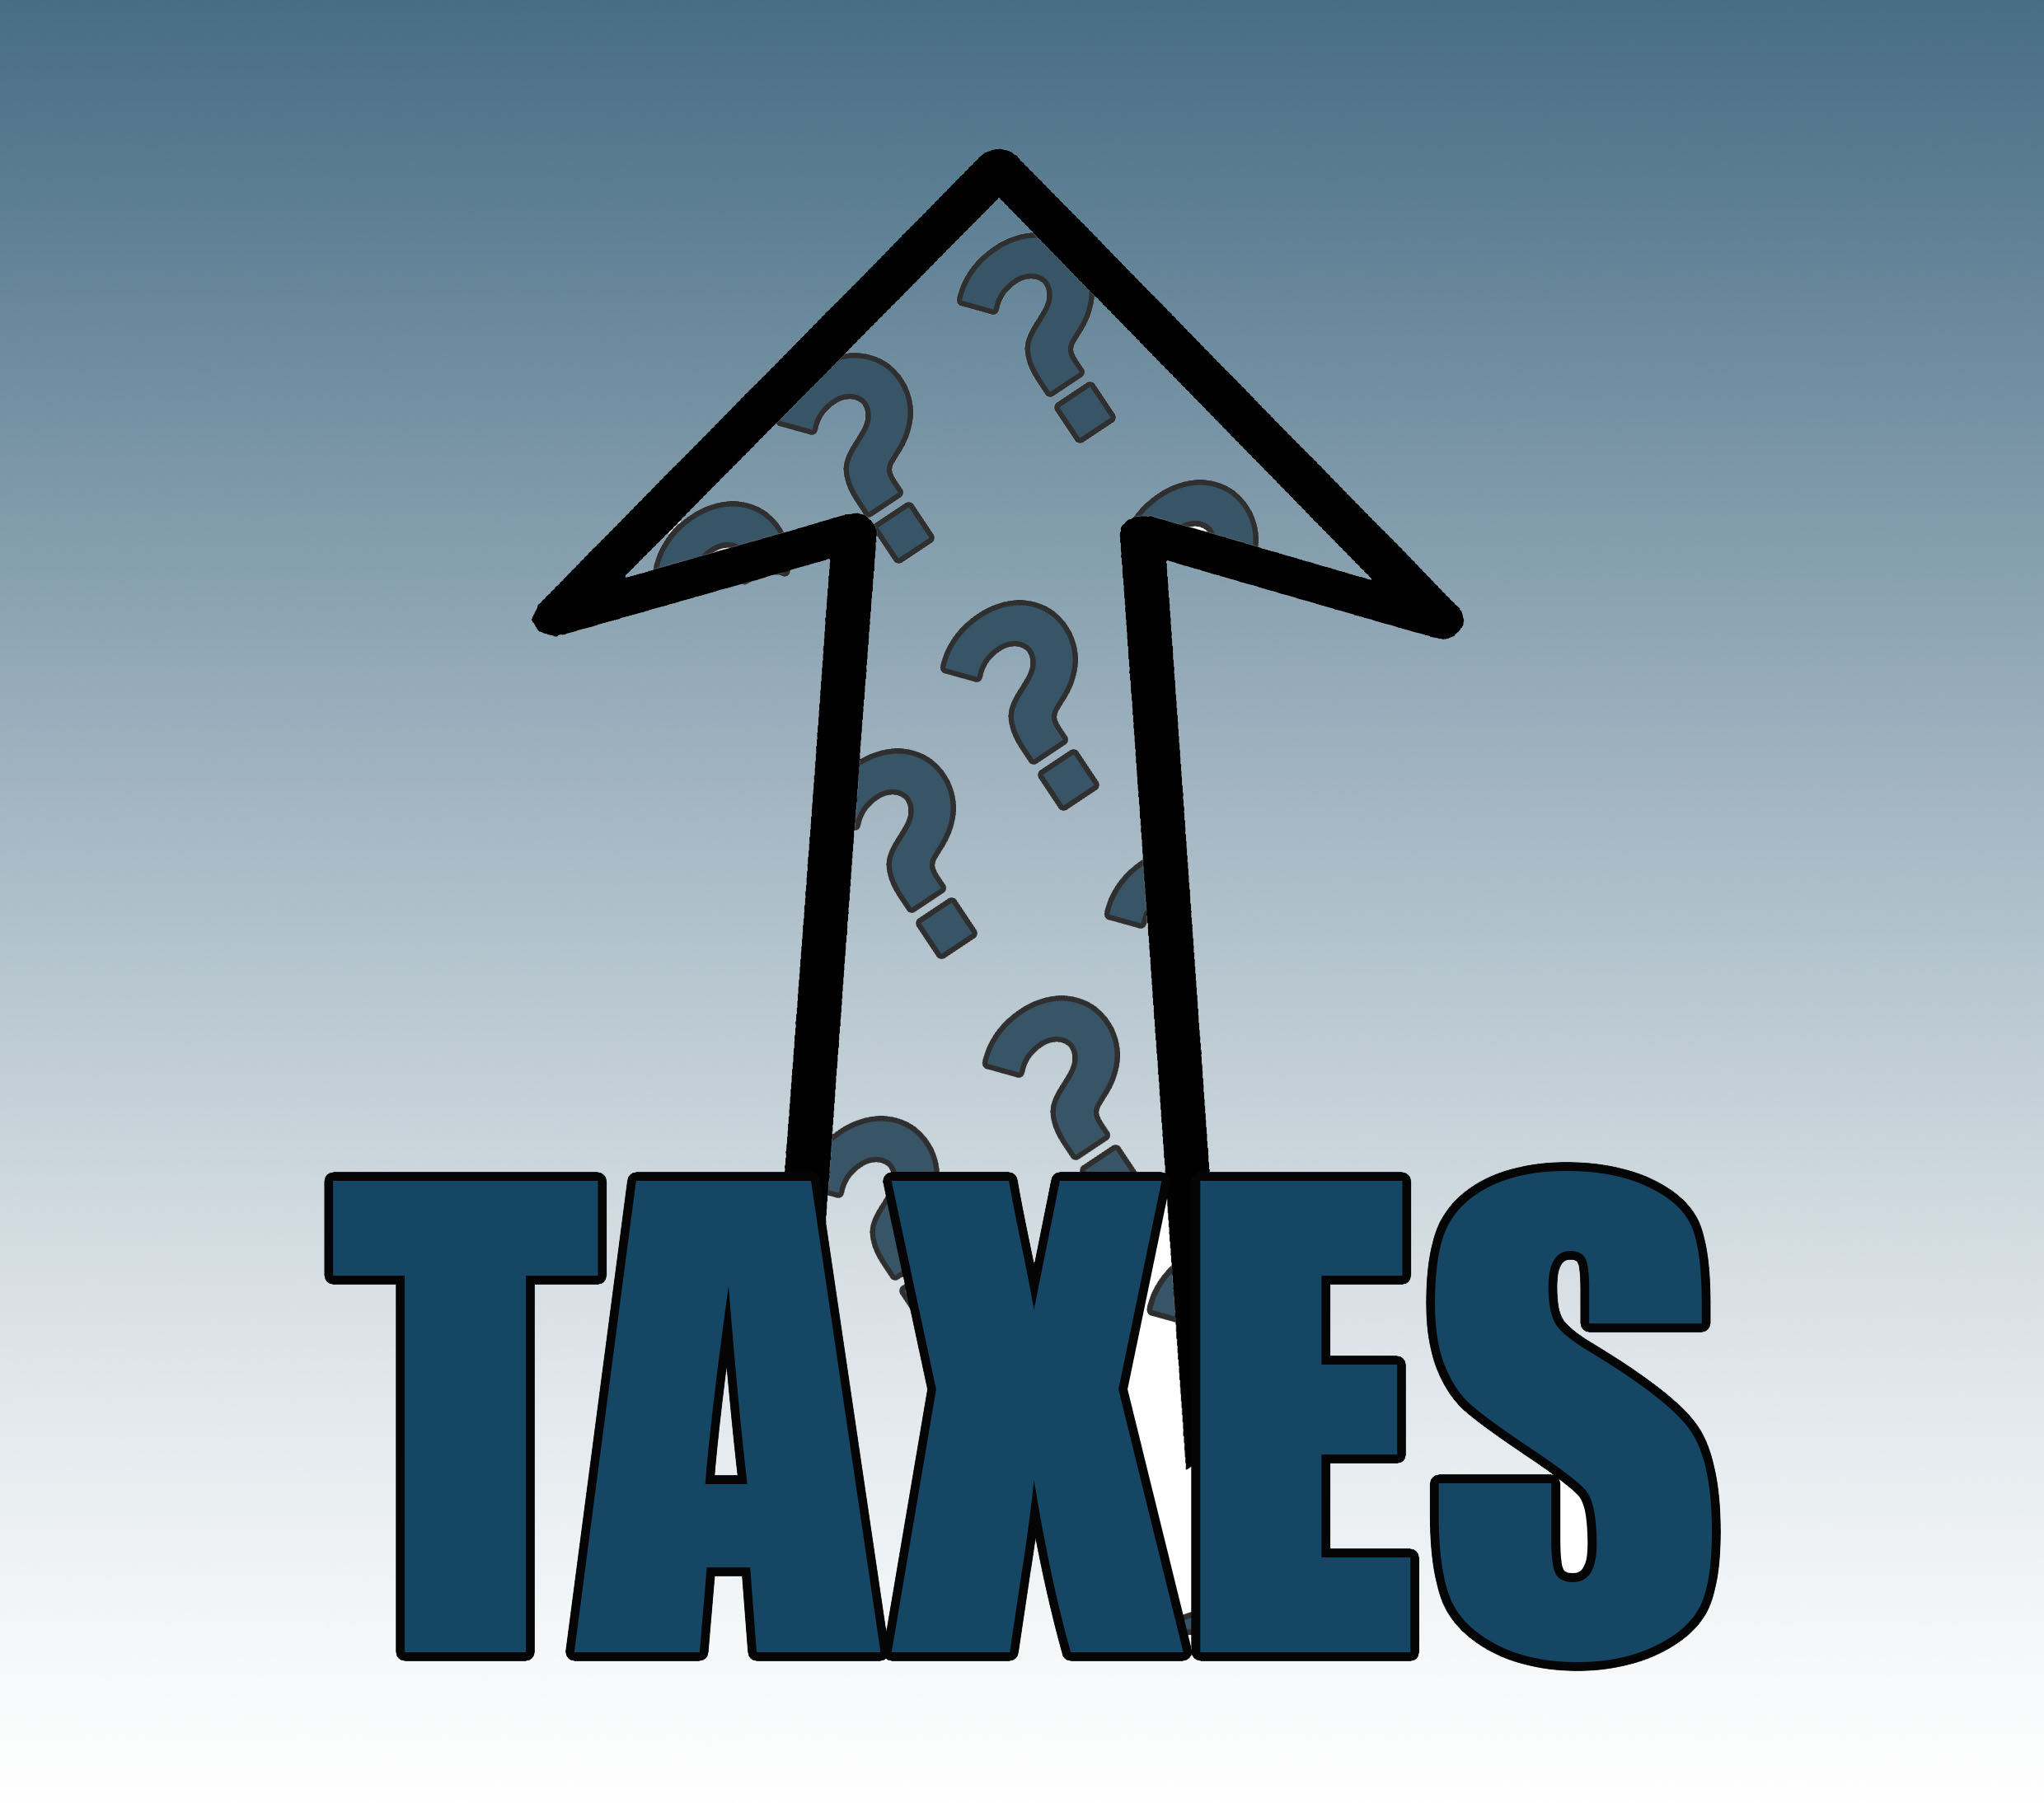 Will taxes rise?